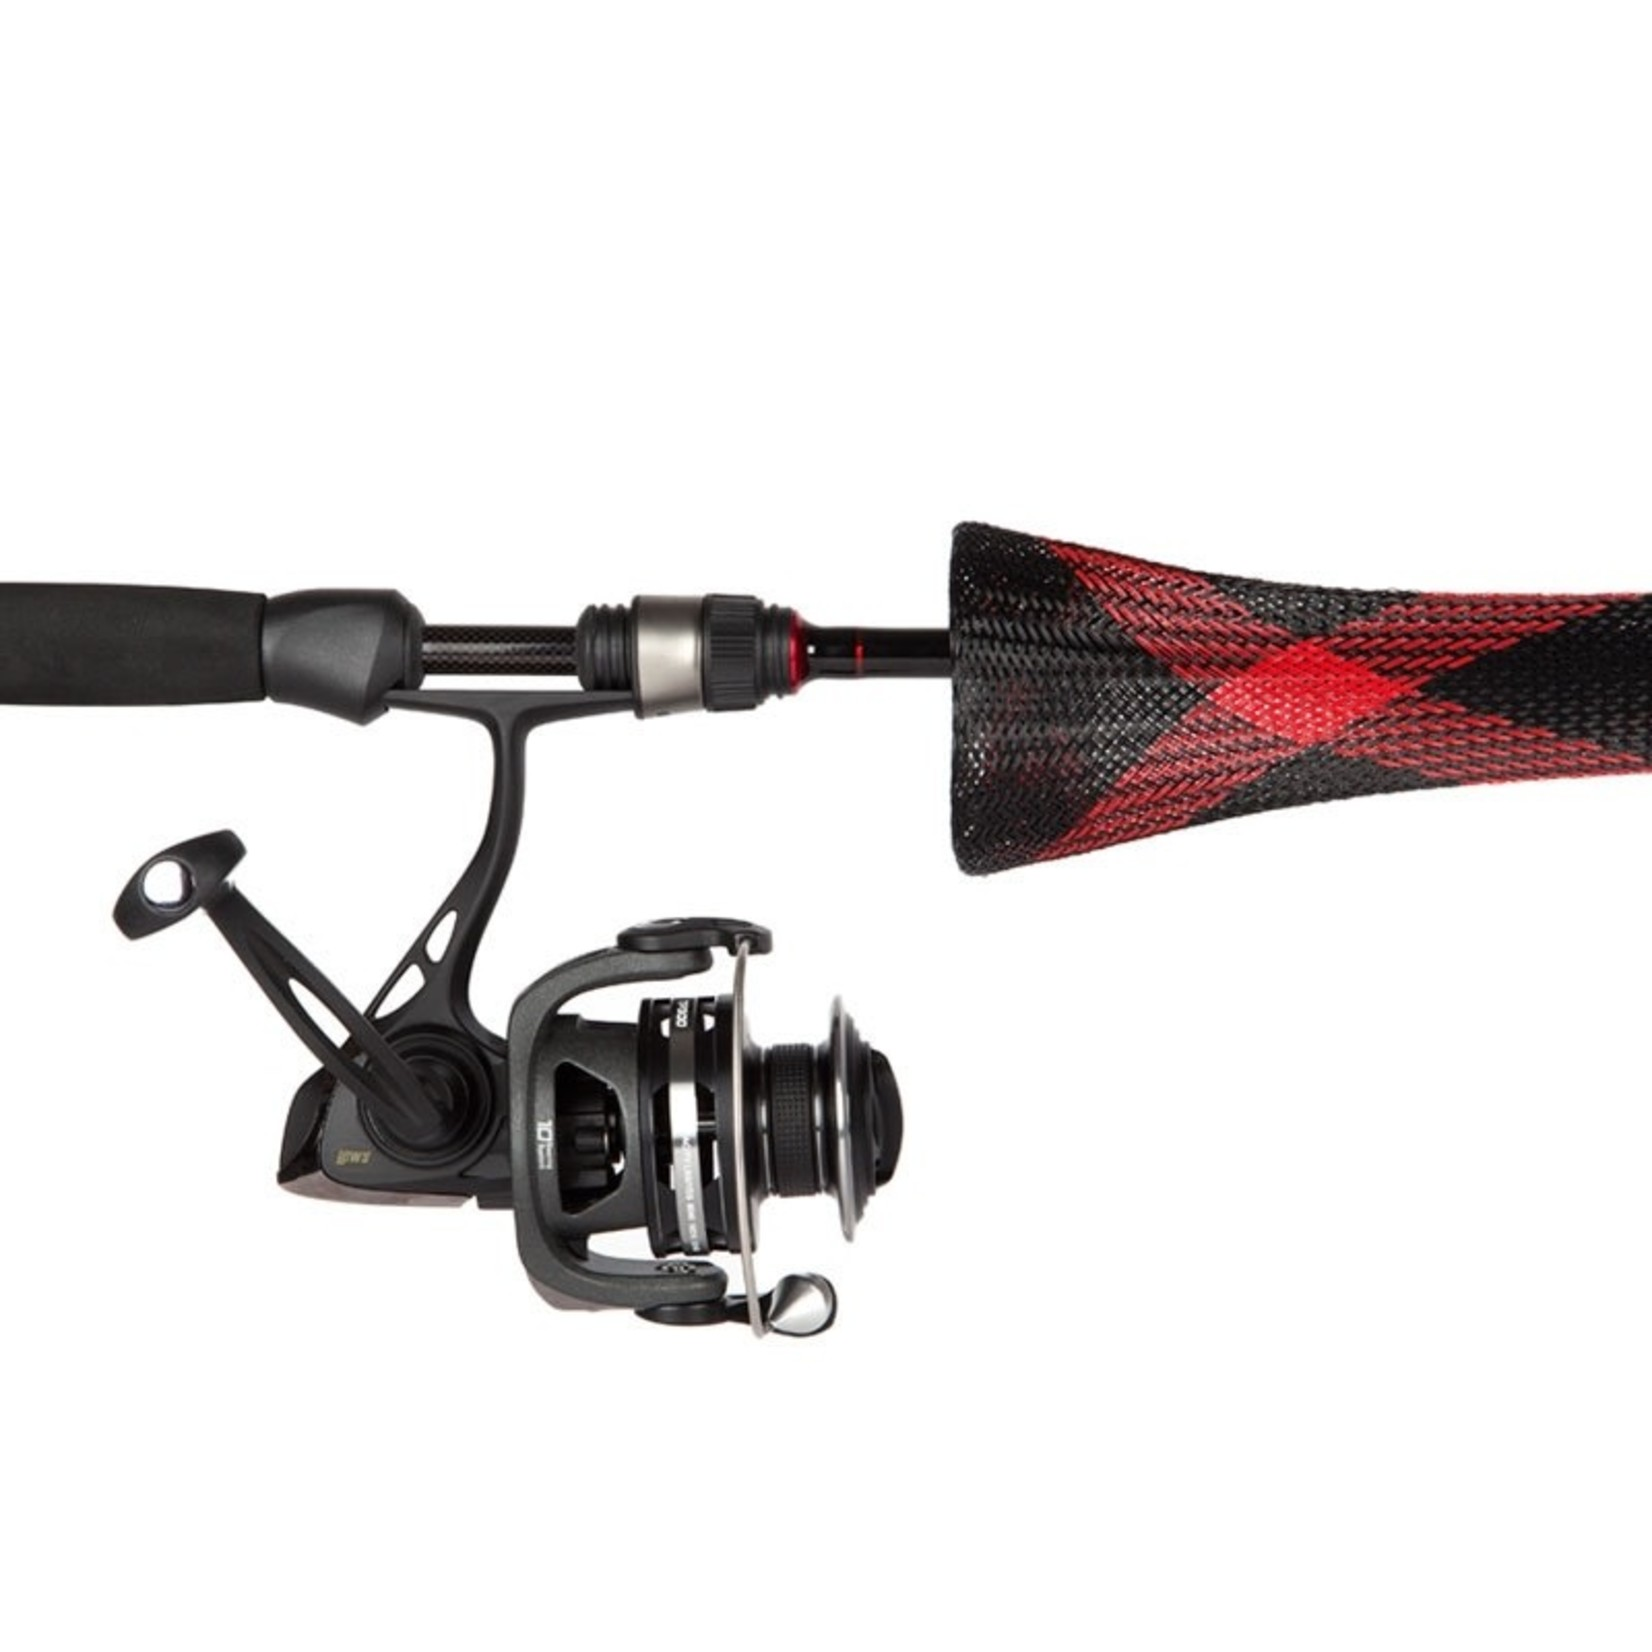 Rod Glove Spinning Rod Glove • Shorty Series 4.5' • Fits Rods 5.0' - 6.0'